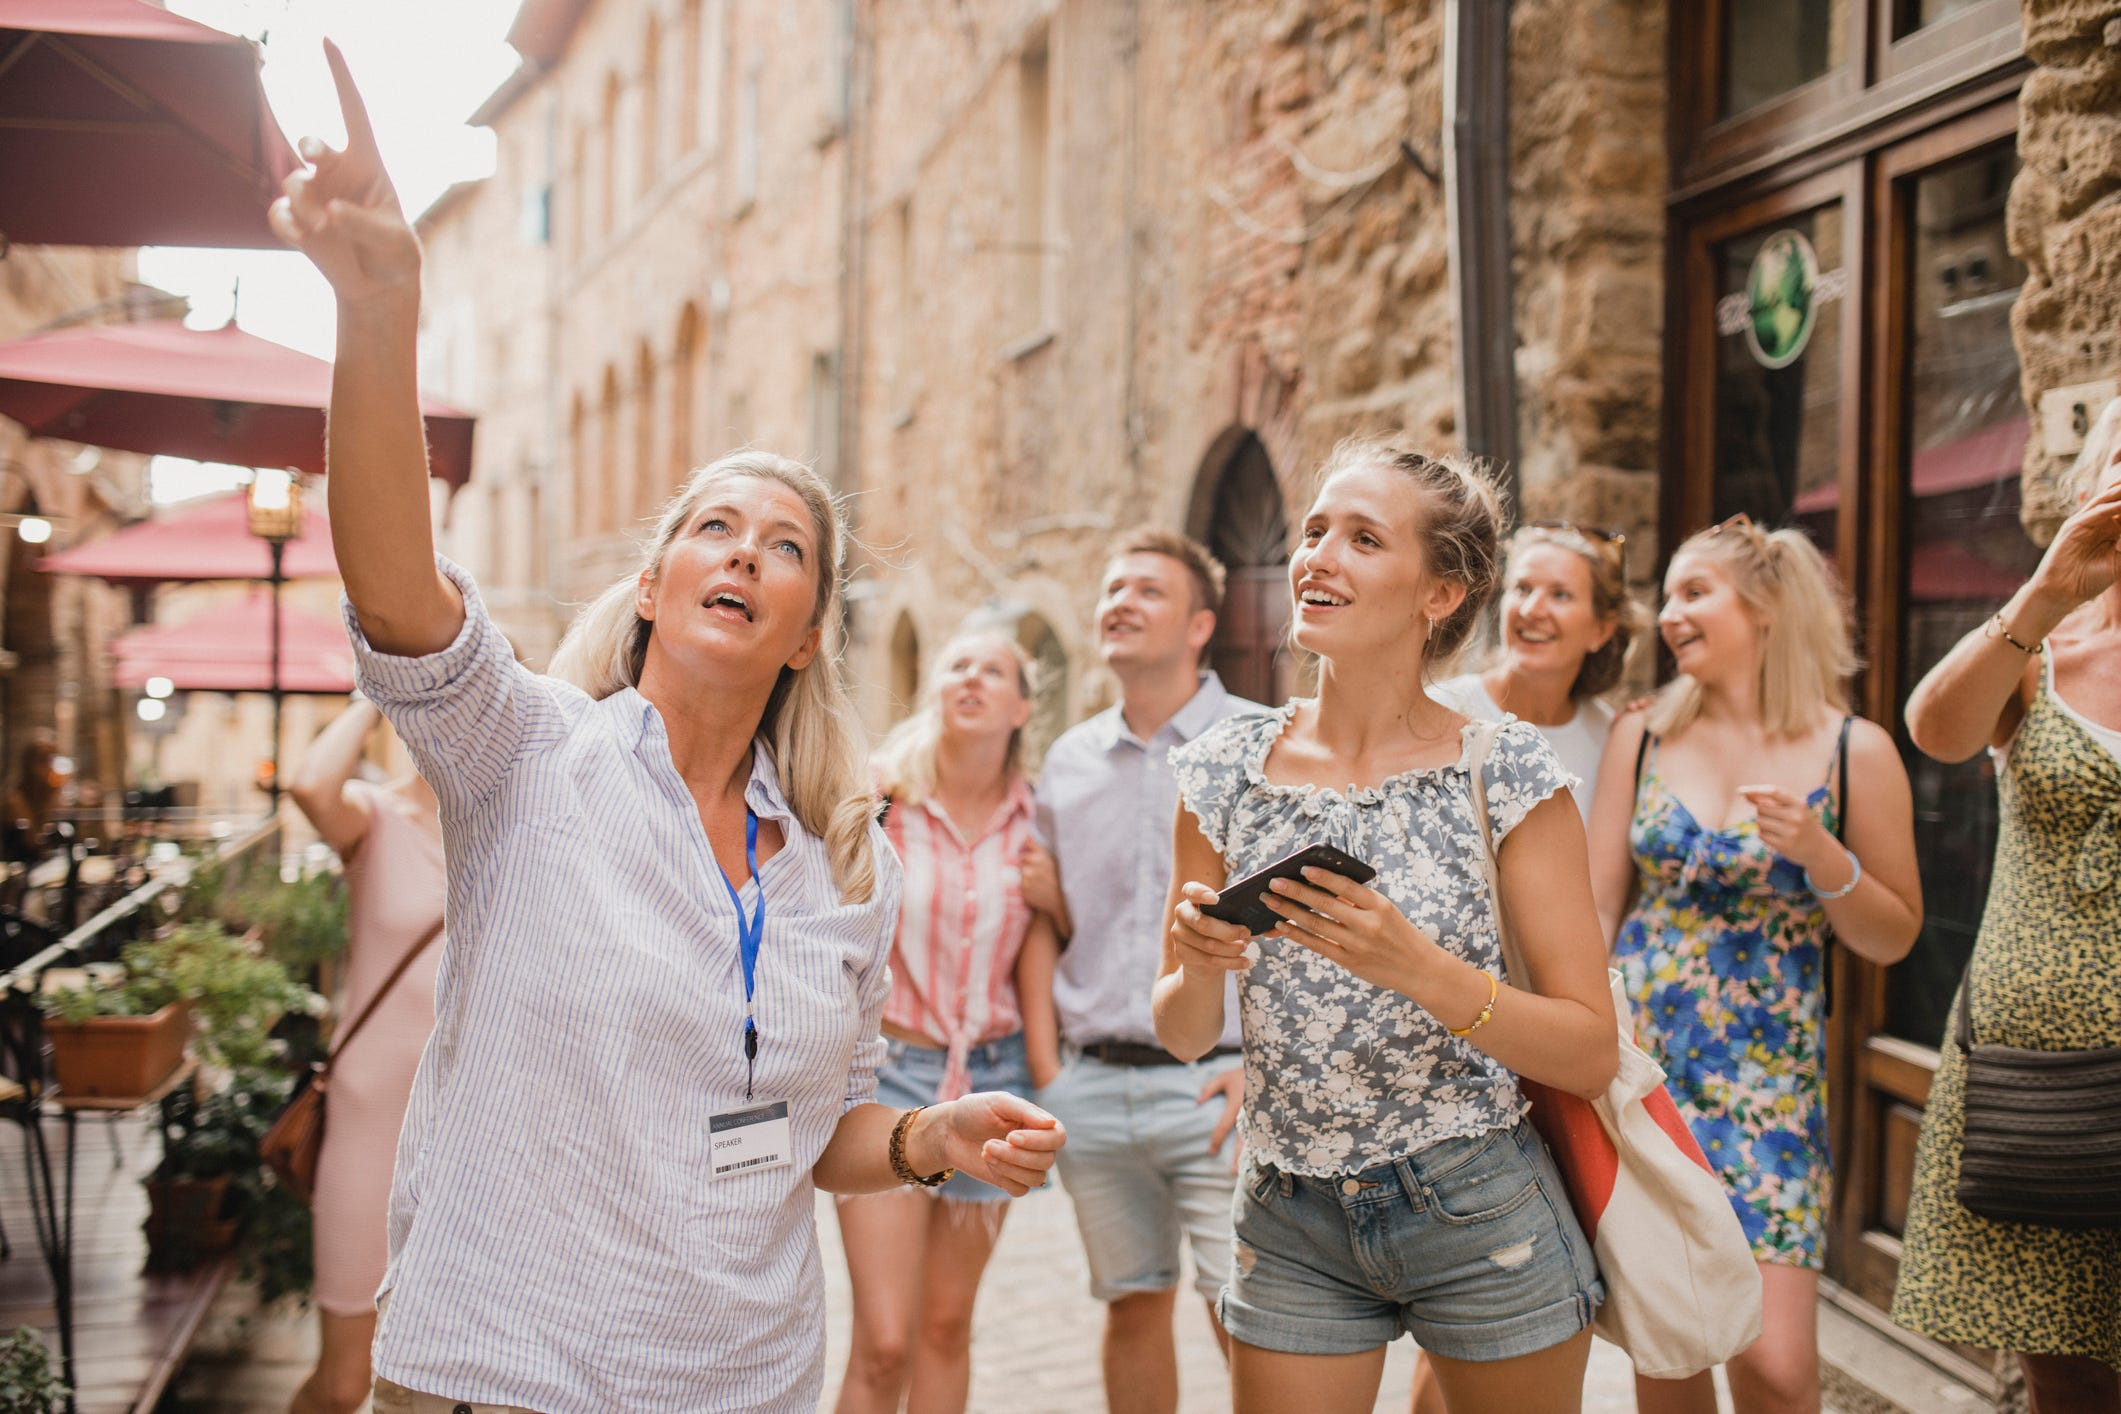 Does Venmo, Cash App work outside the US? Navigating money abroad